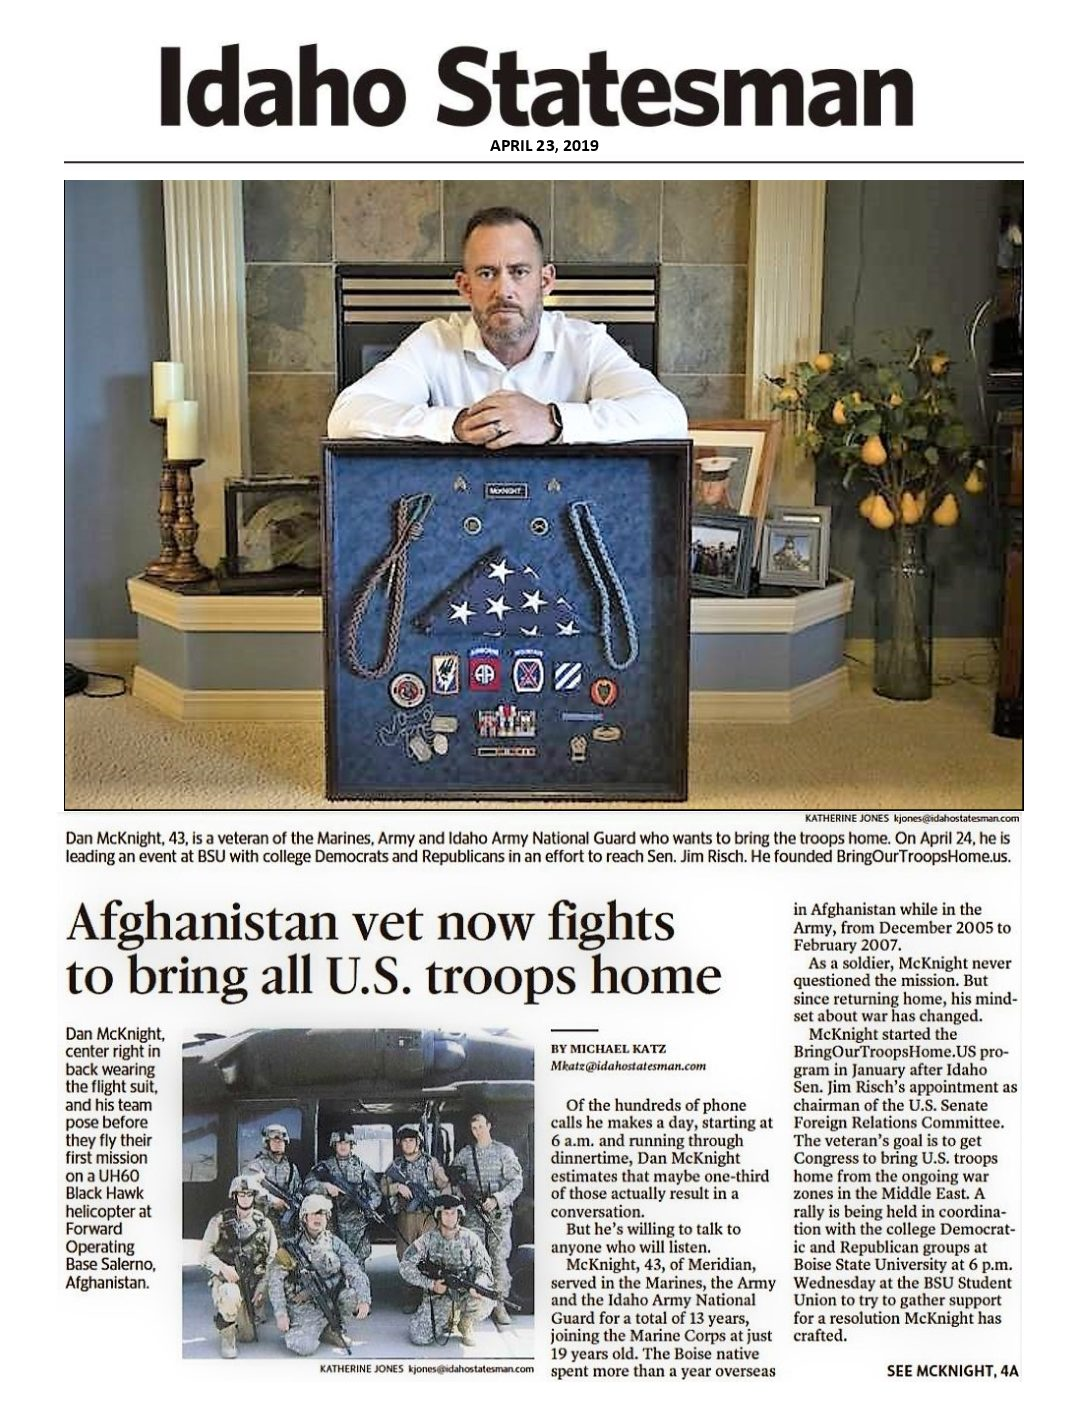 Idaho Statesman story – Afghanistan vet now fights to bring all U.S. troops home